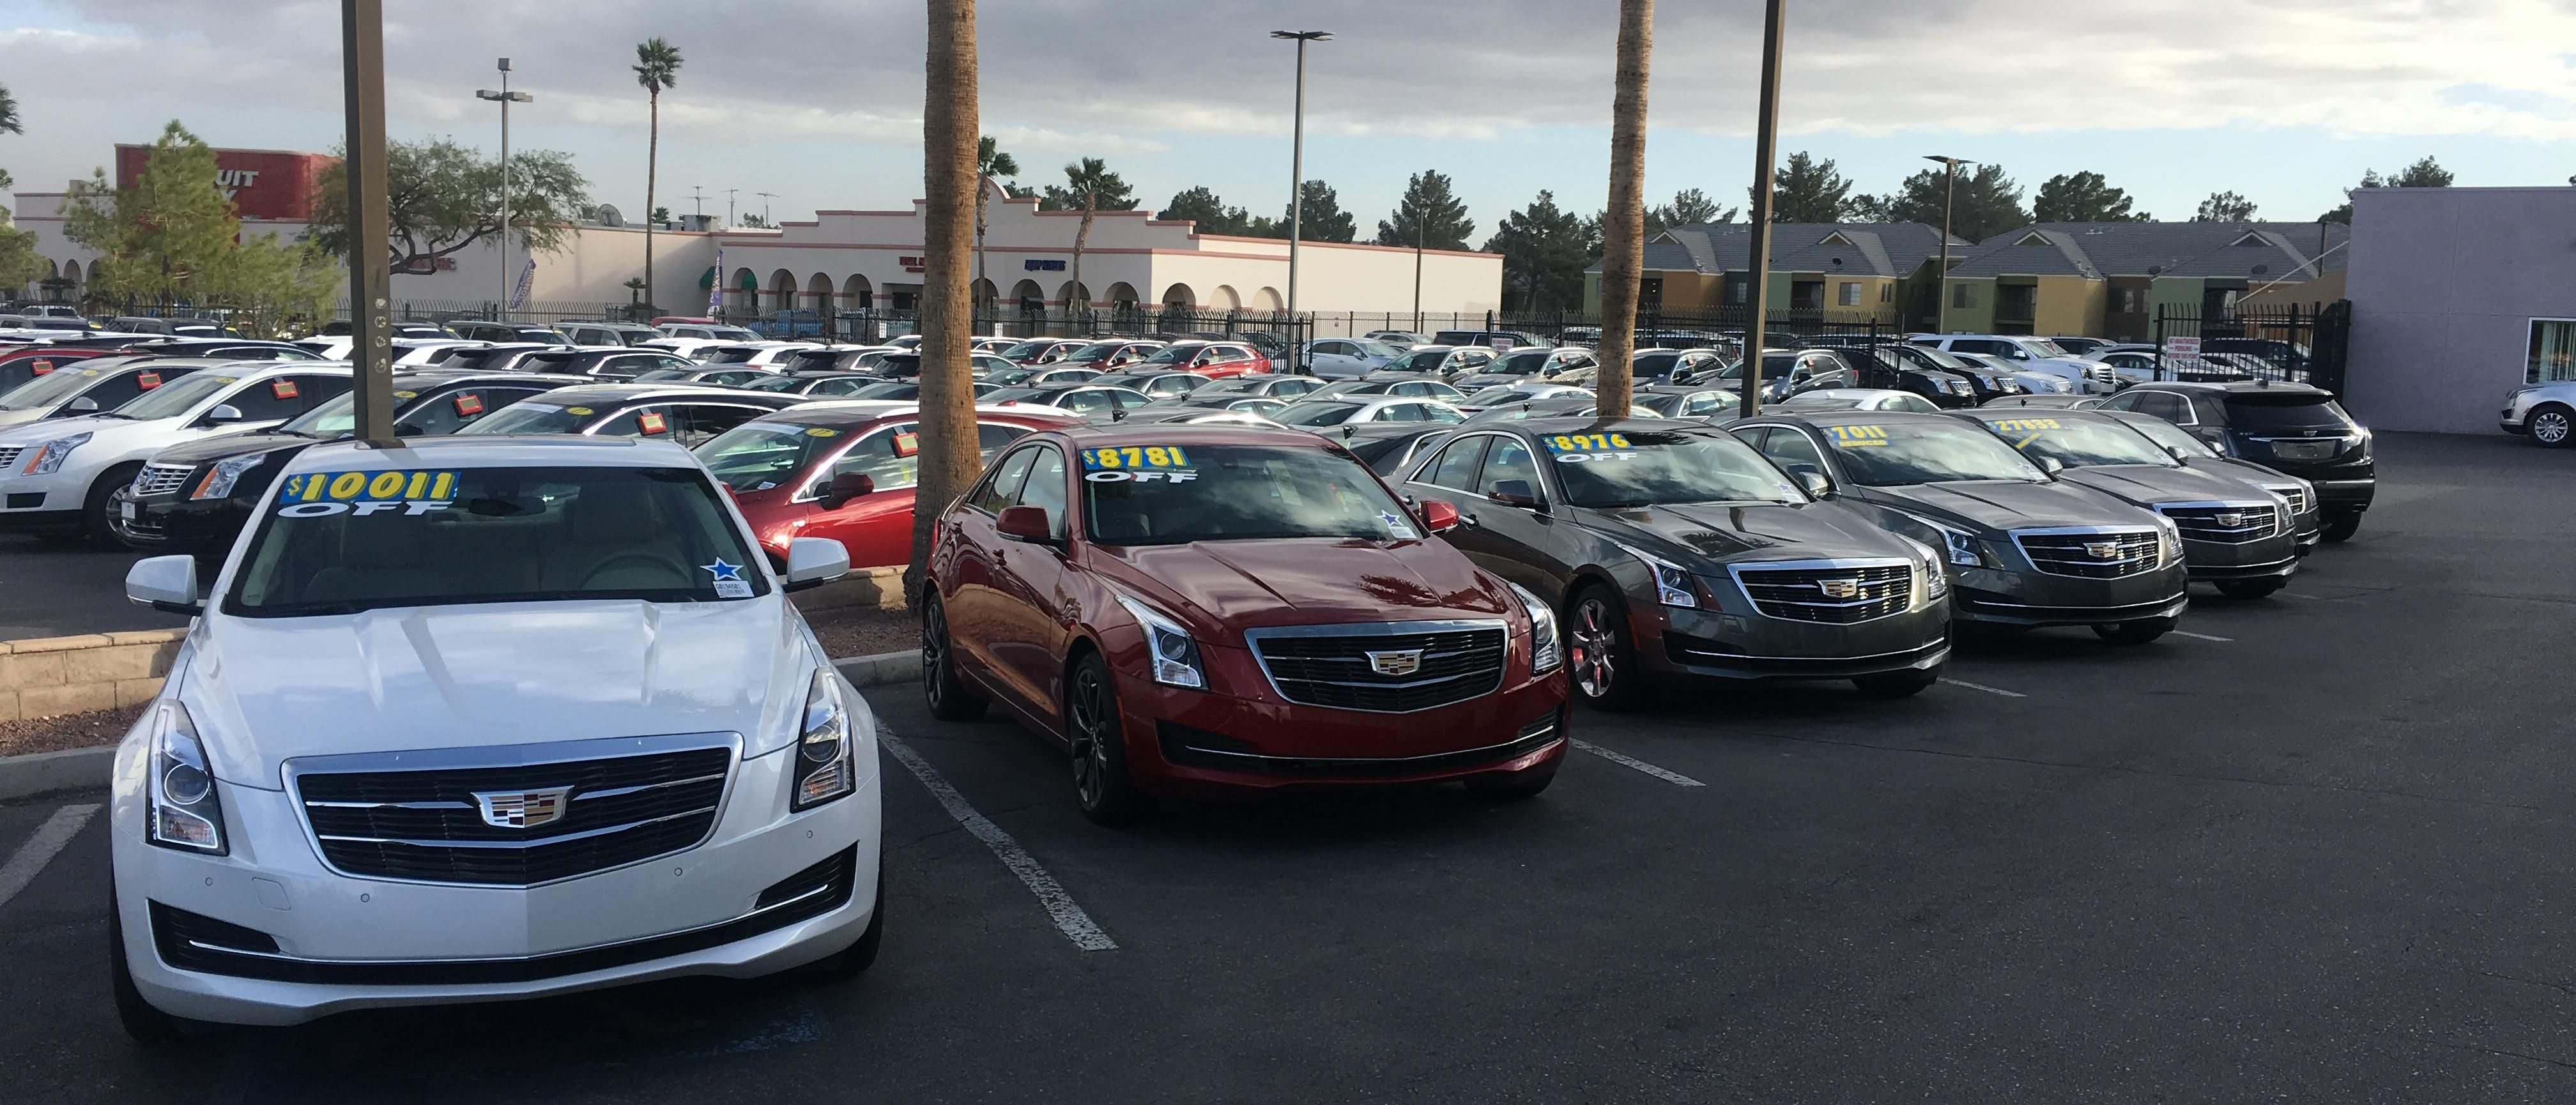 Things You Should Consider Before Buying A Used Car in